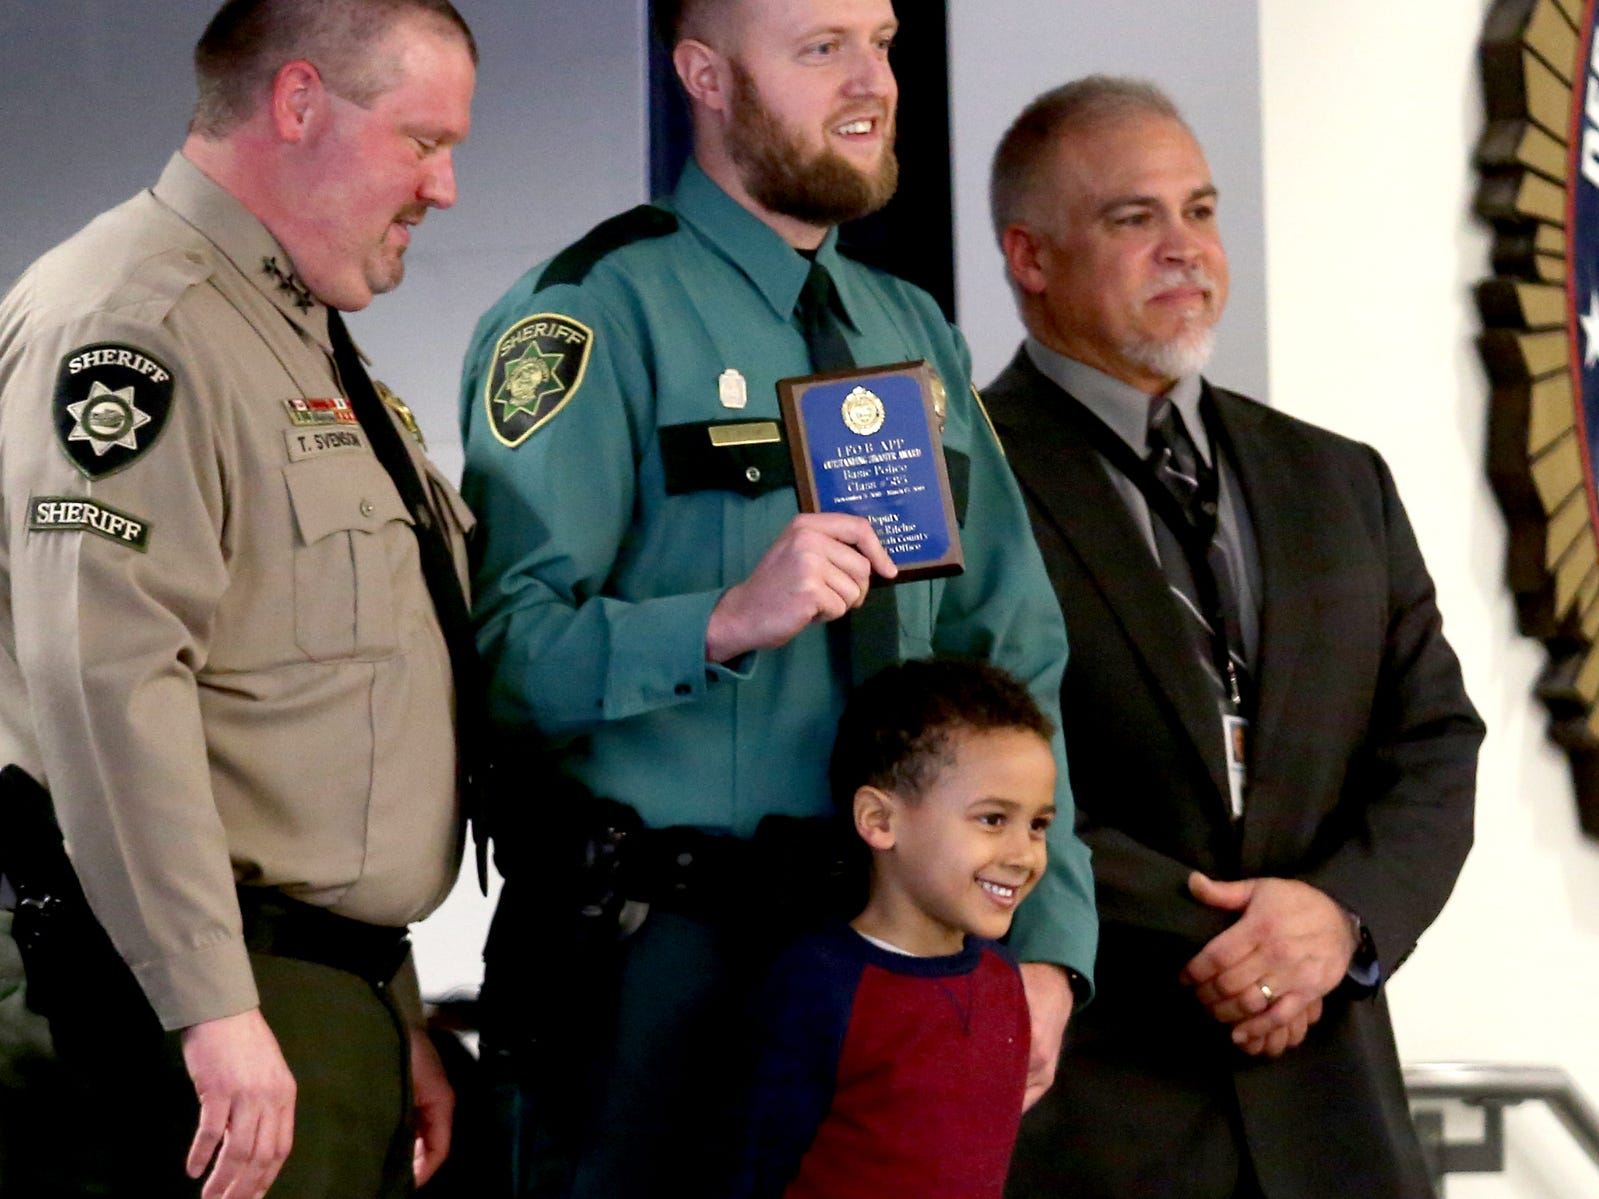 Jayden Ritchie, 5, of Tigard, stands on stage for a photo with his dad, Travis Ritchie, a new Multnomah County Sheriff's Deputy, during a Basic Police Class graduation ceremony at the Department of Public Safety Standards and Training in Salem on March 15, 2019.